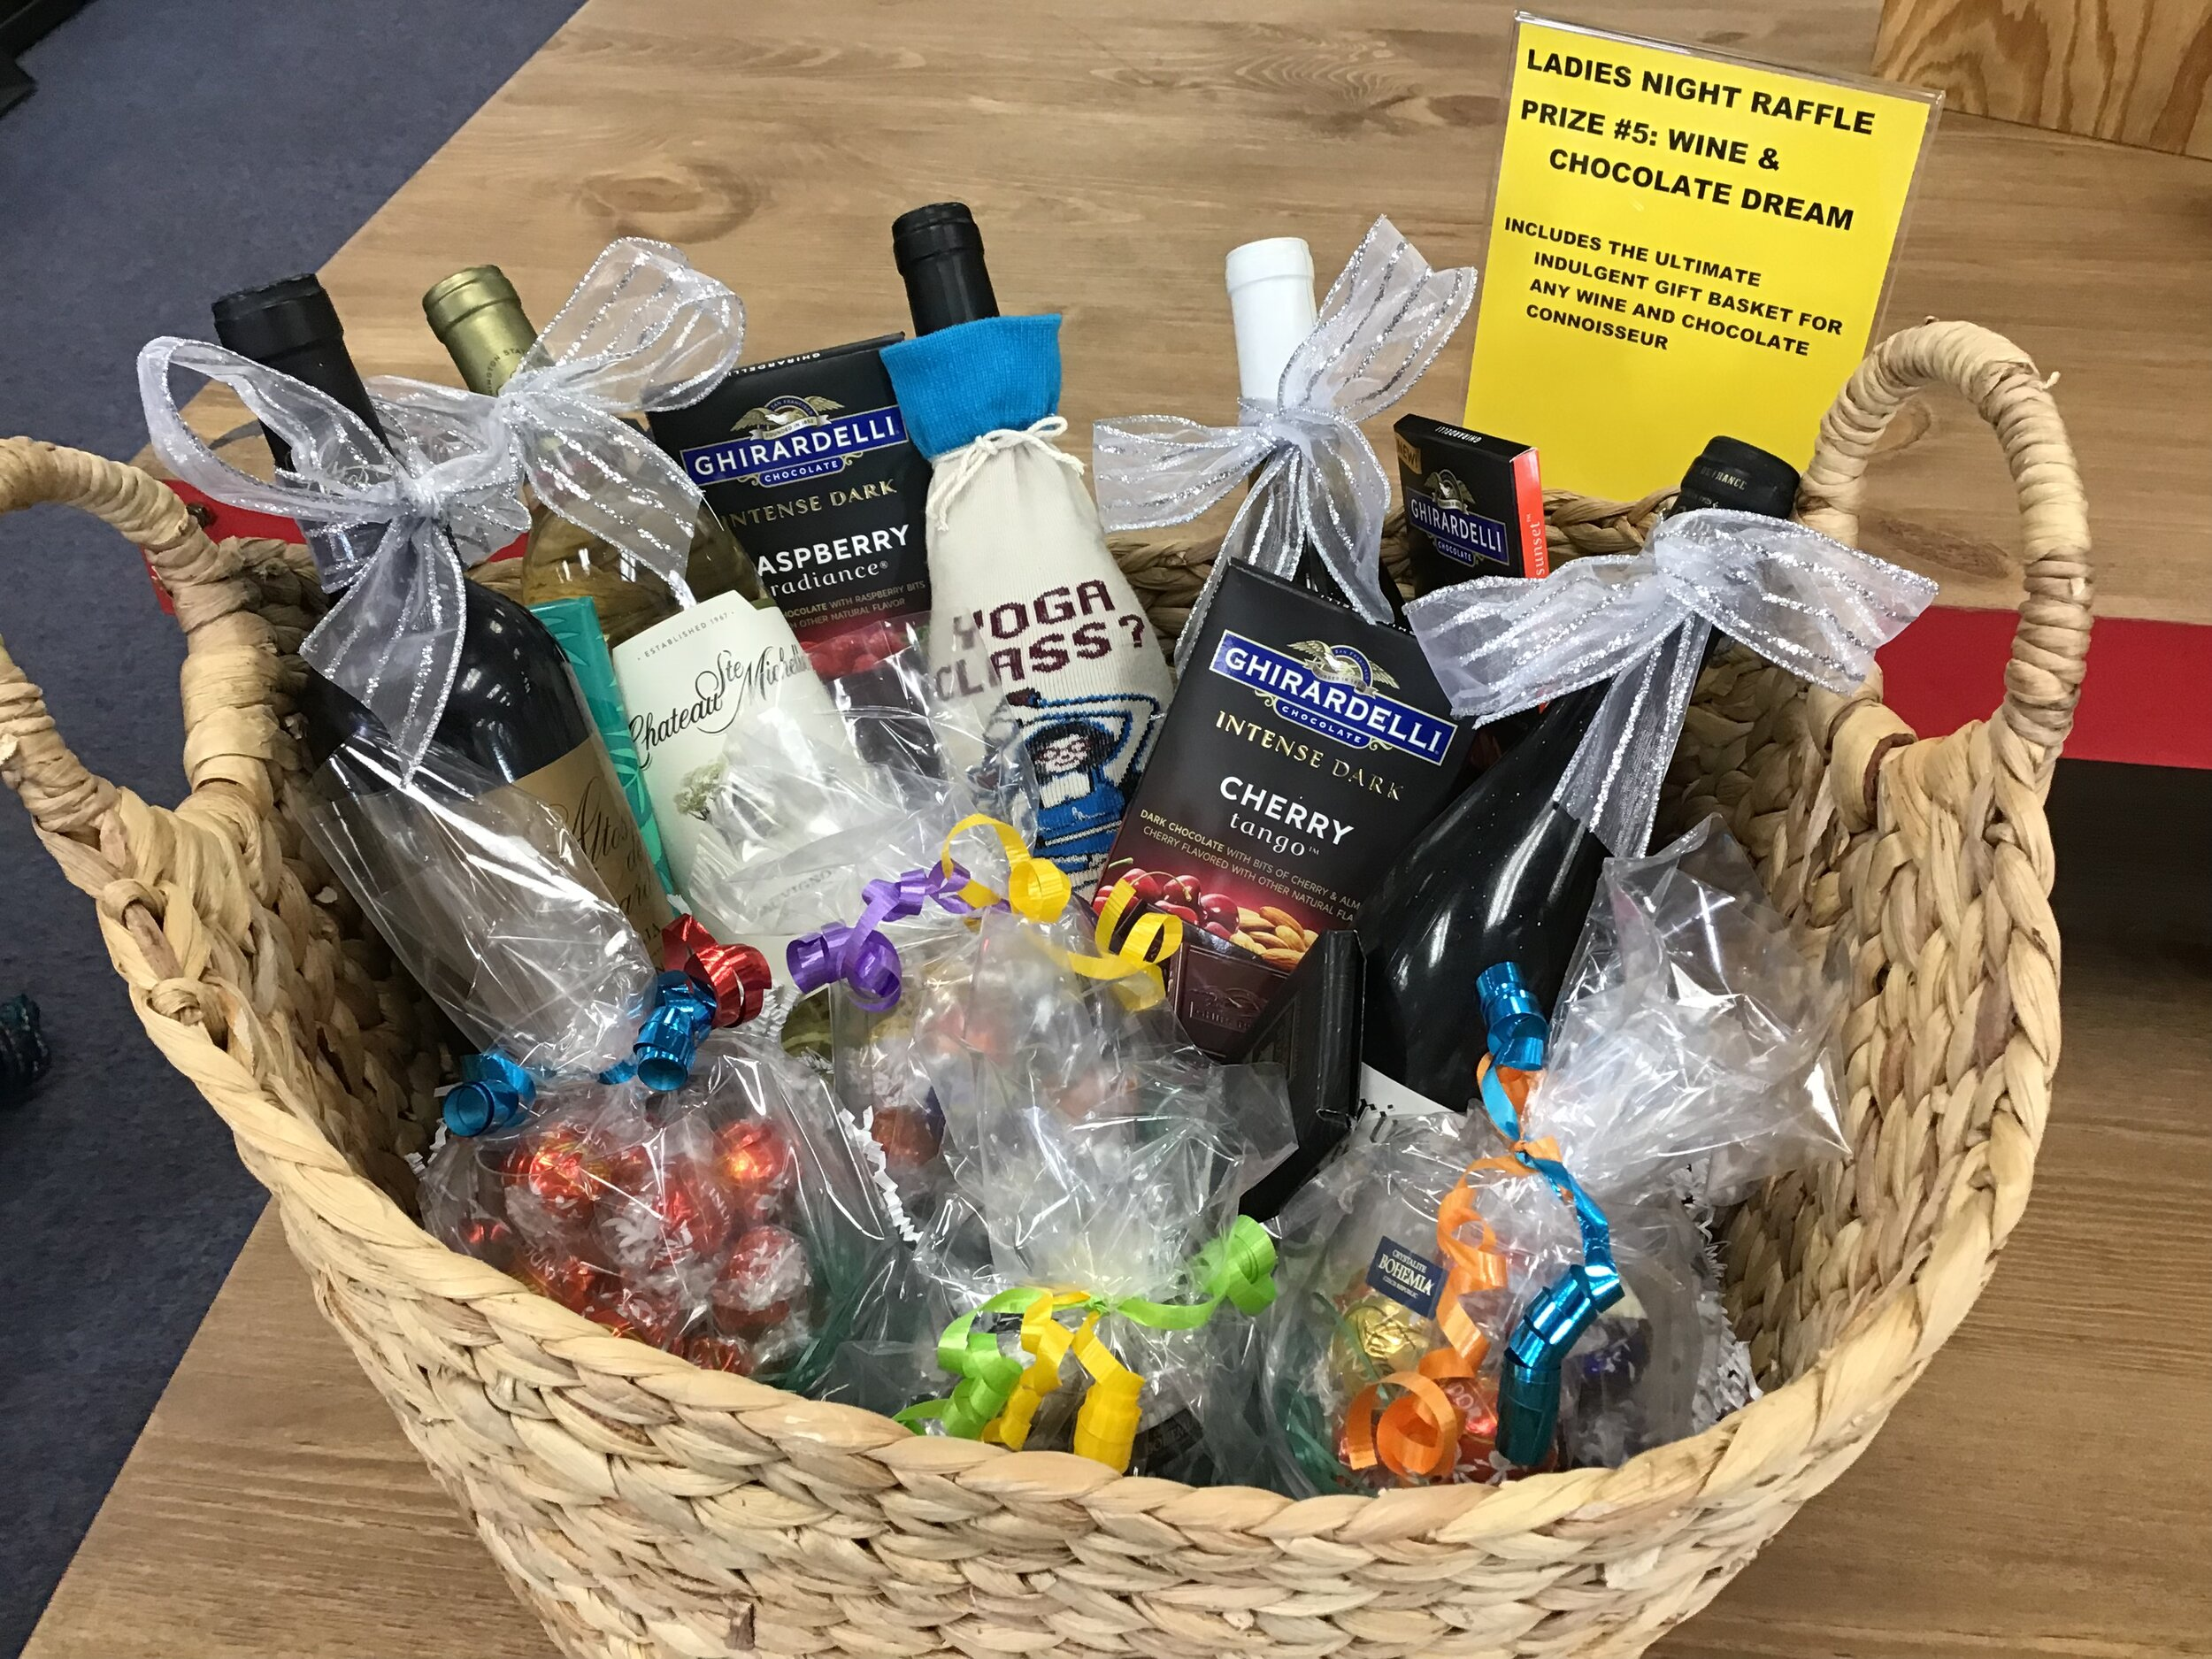 RAFFLE PRIZE #5 - Wine and Chocolate Dream - A wonderful basket for those who like to indulge in Wine and Chocolate* Must be 21 or older to win this prize* Winner must pick up in person with valid photo ID that matches the winning raffle ticket